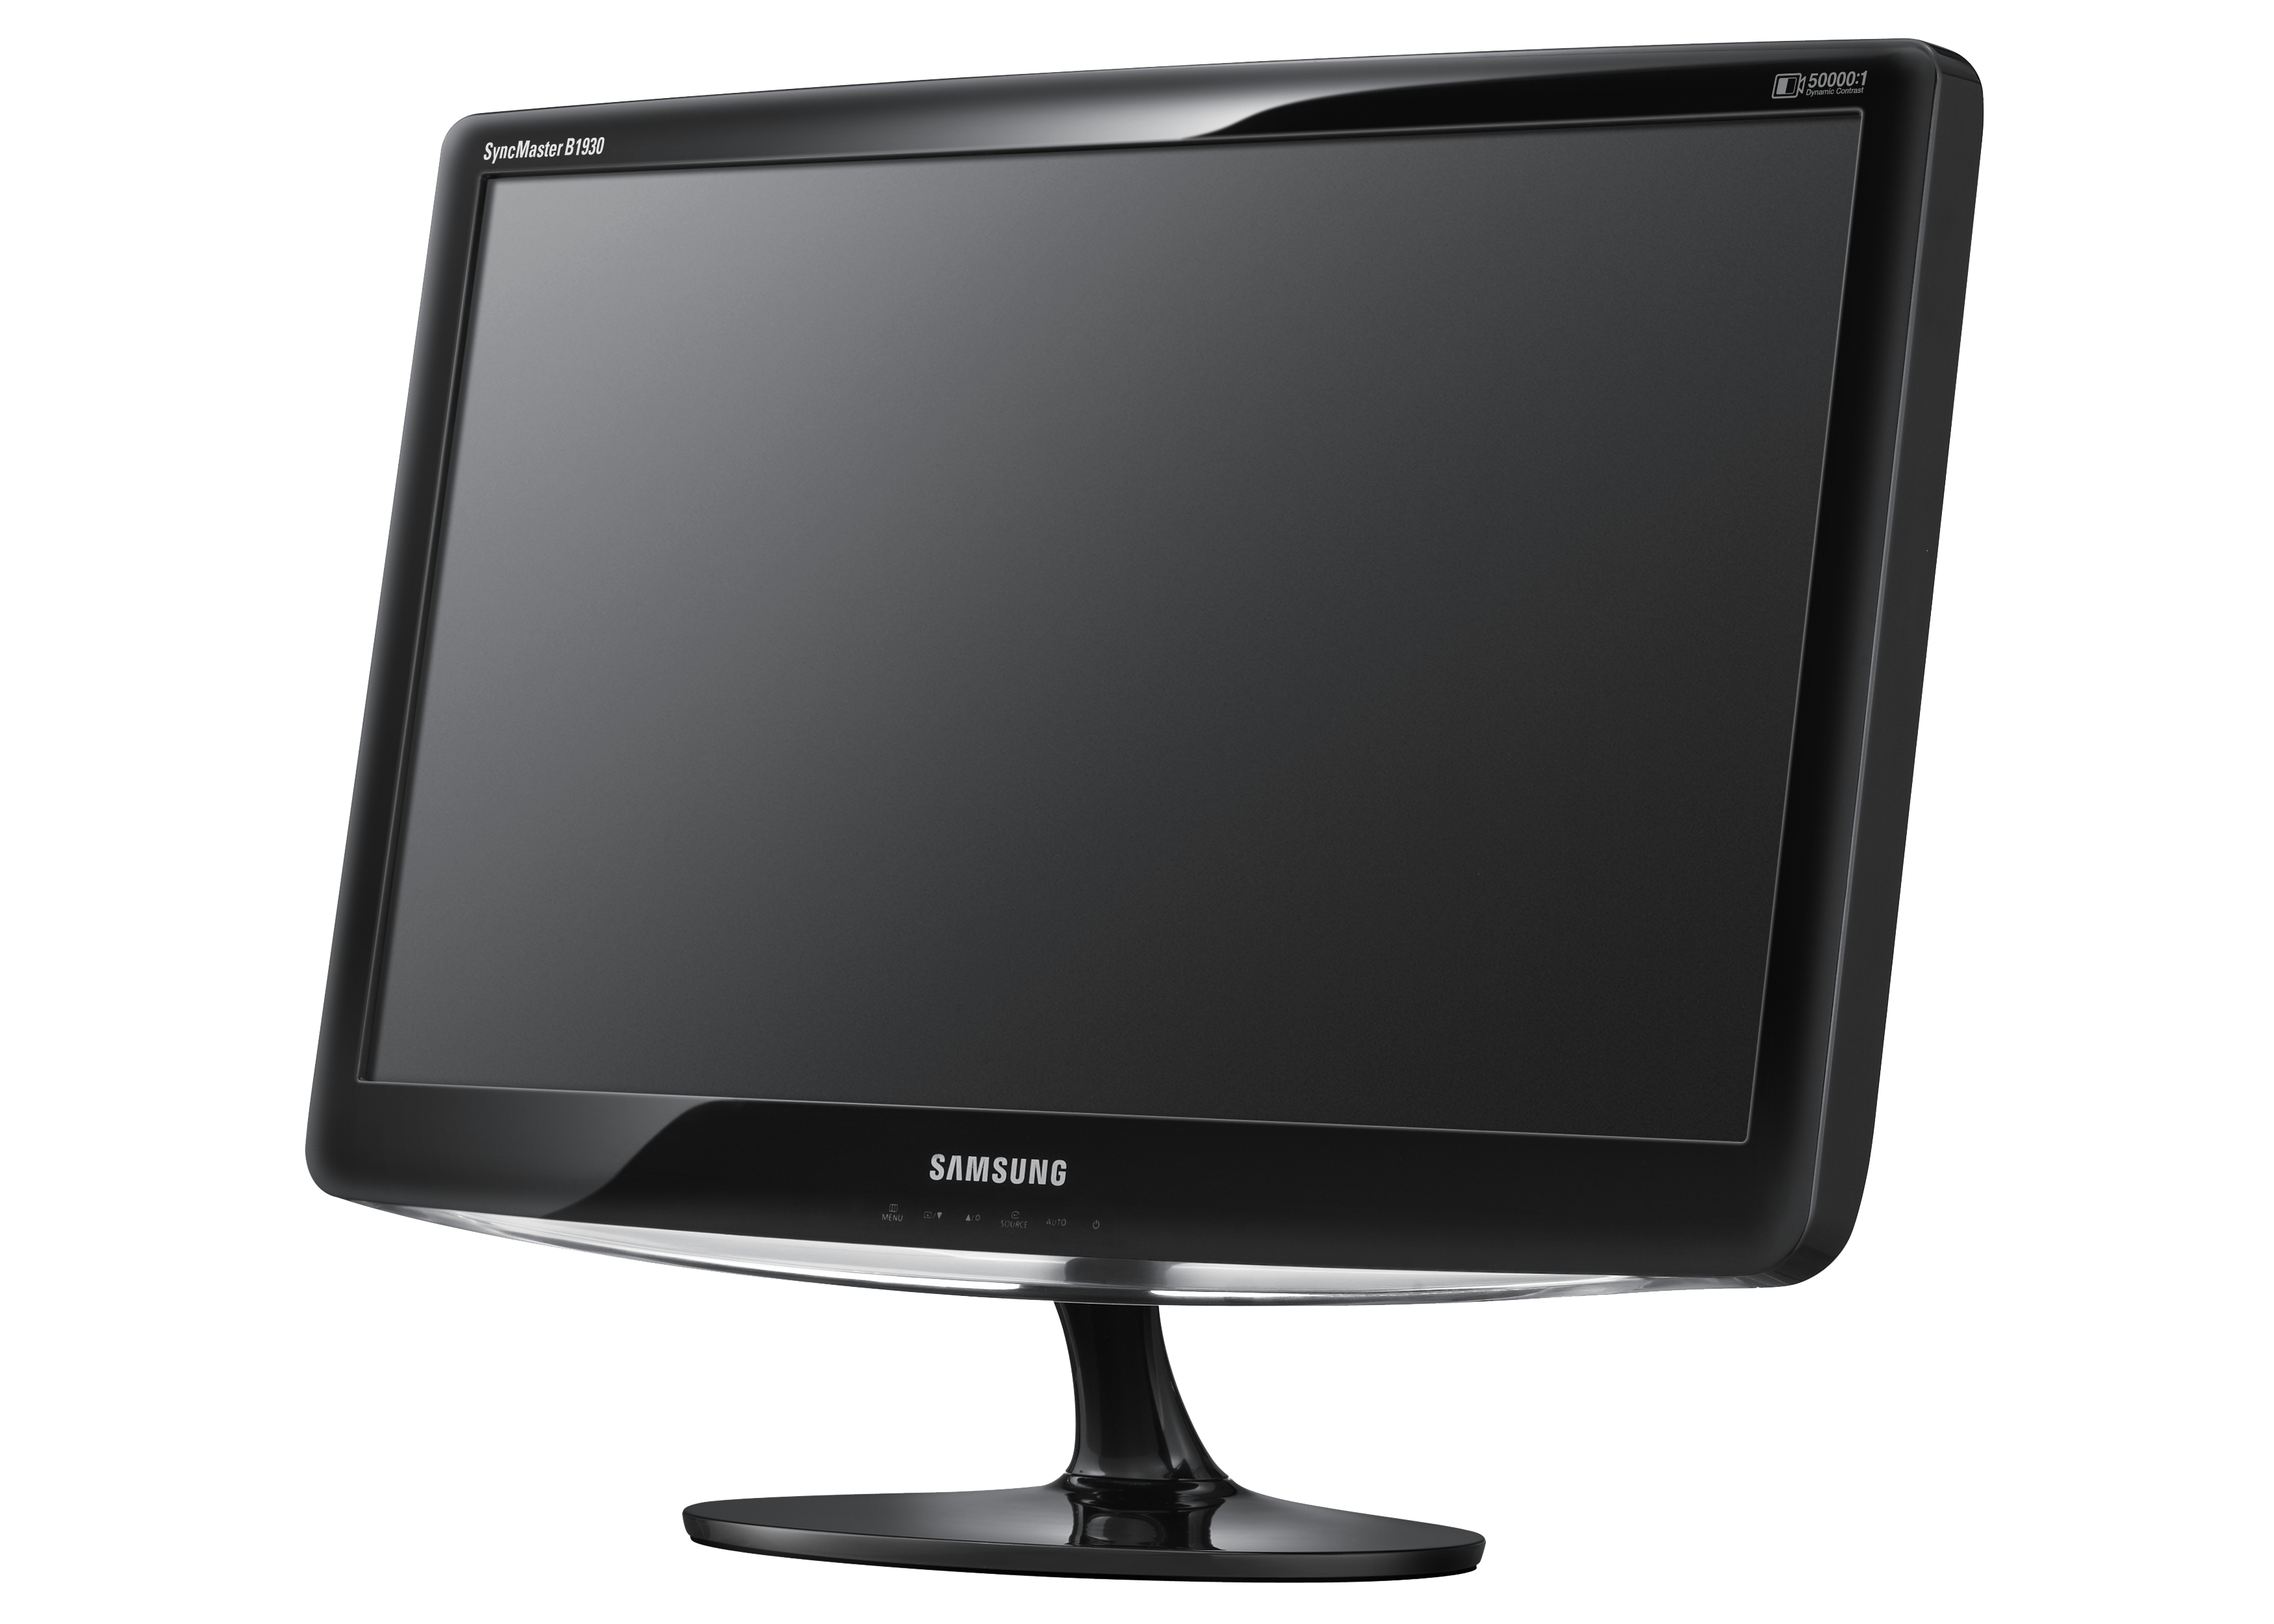 Lcd Monitor Png Transparent Lcd Monitor Png Images Pluspng